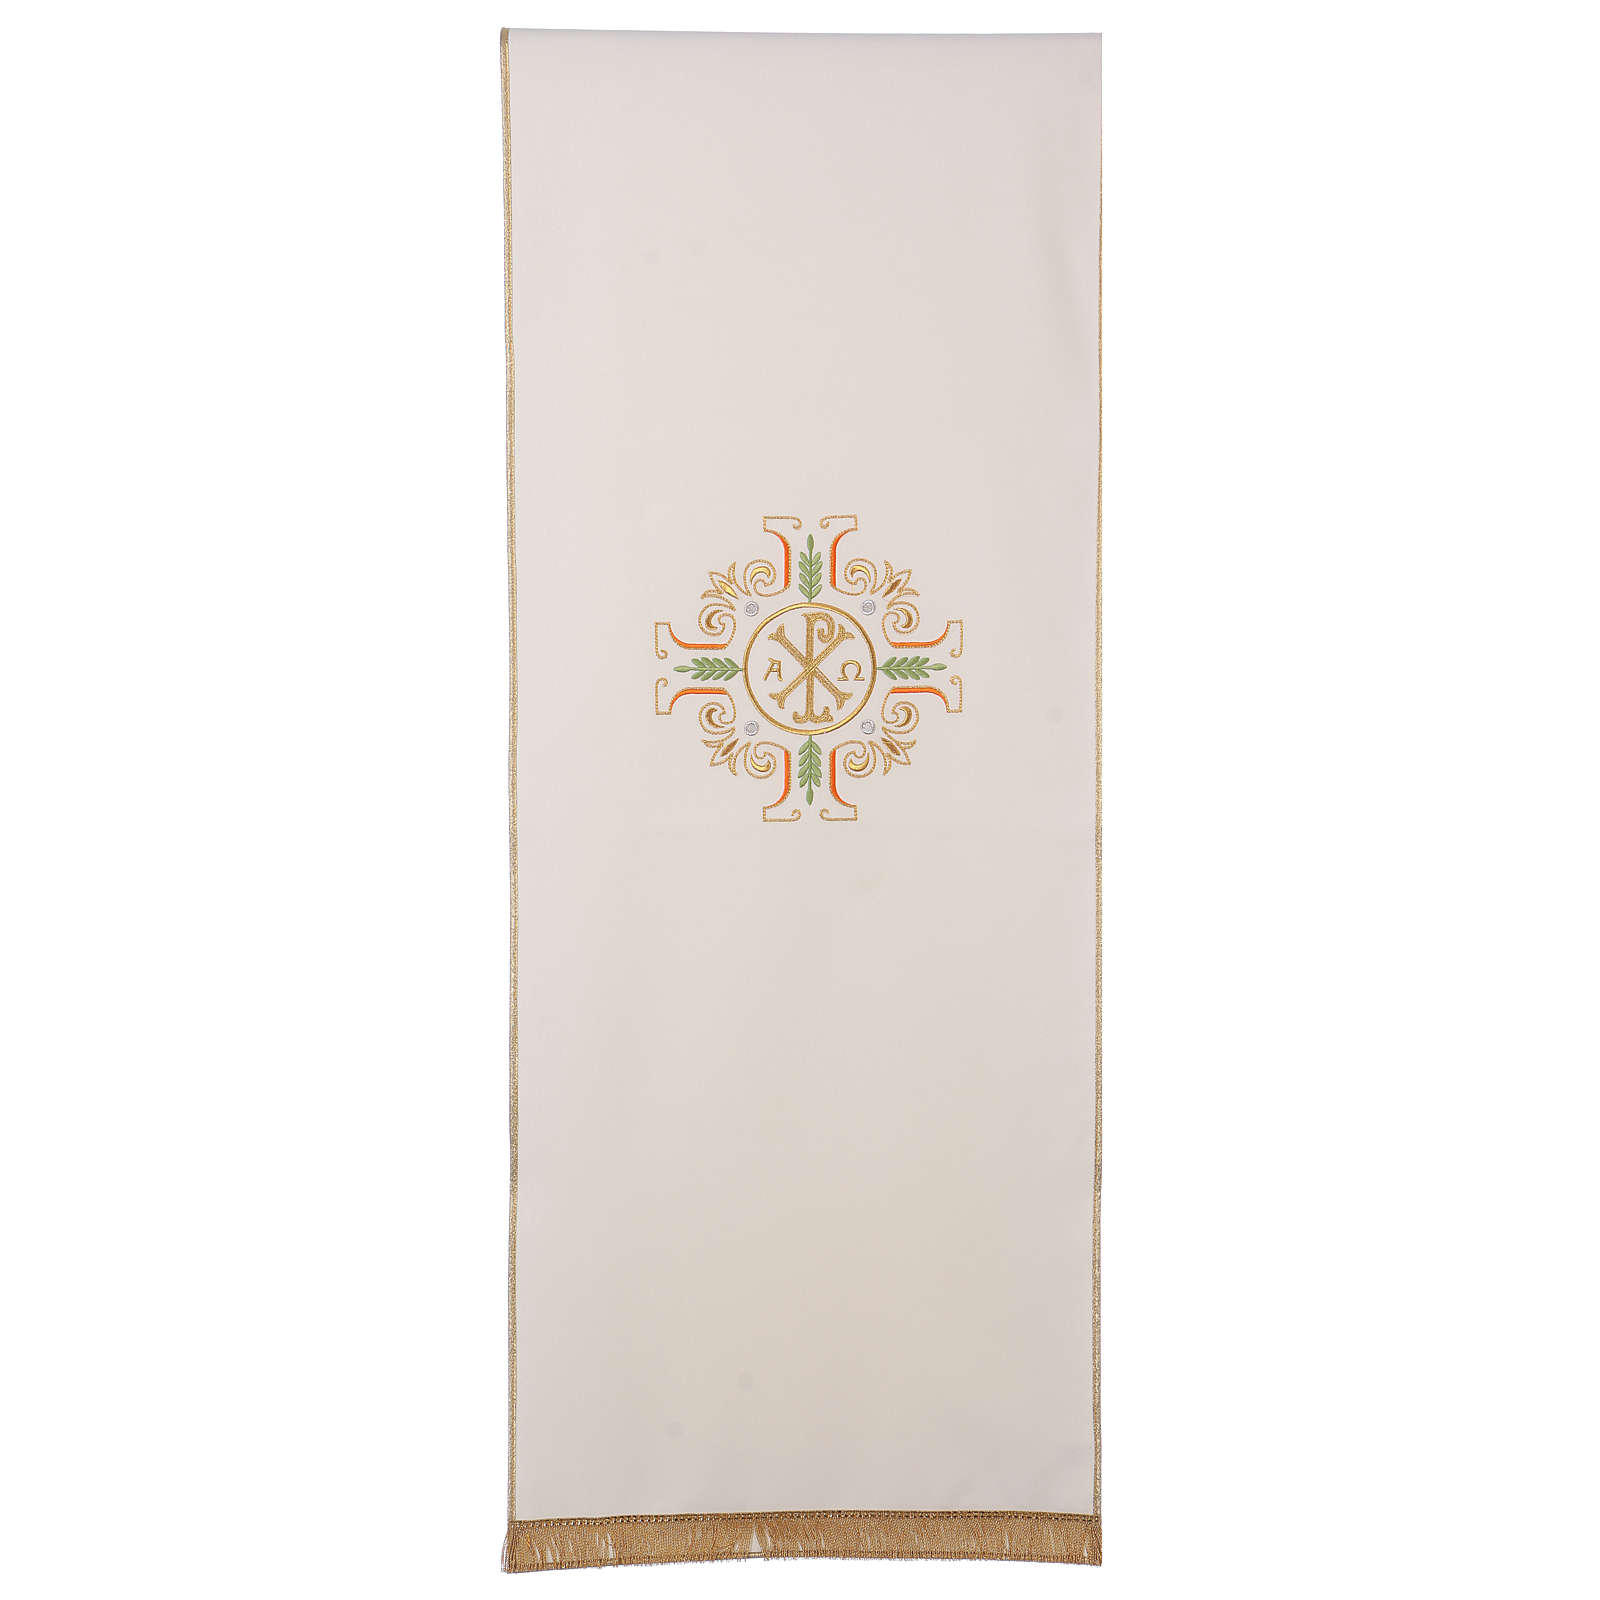 Lectern Cover with cross, PAX, Alpha and Omega symbols 4